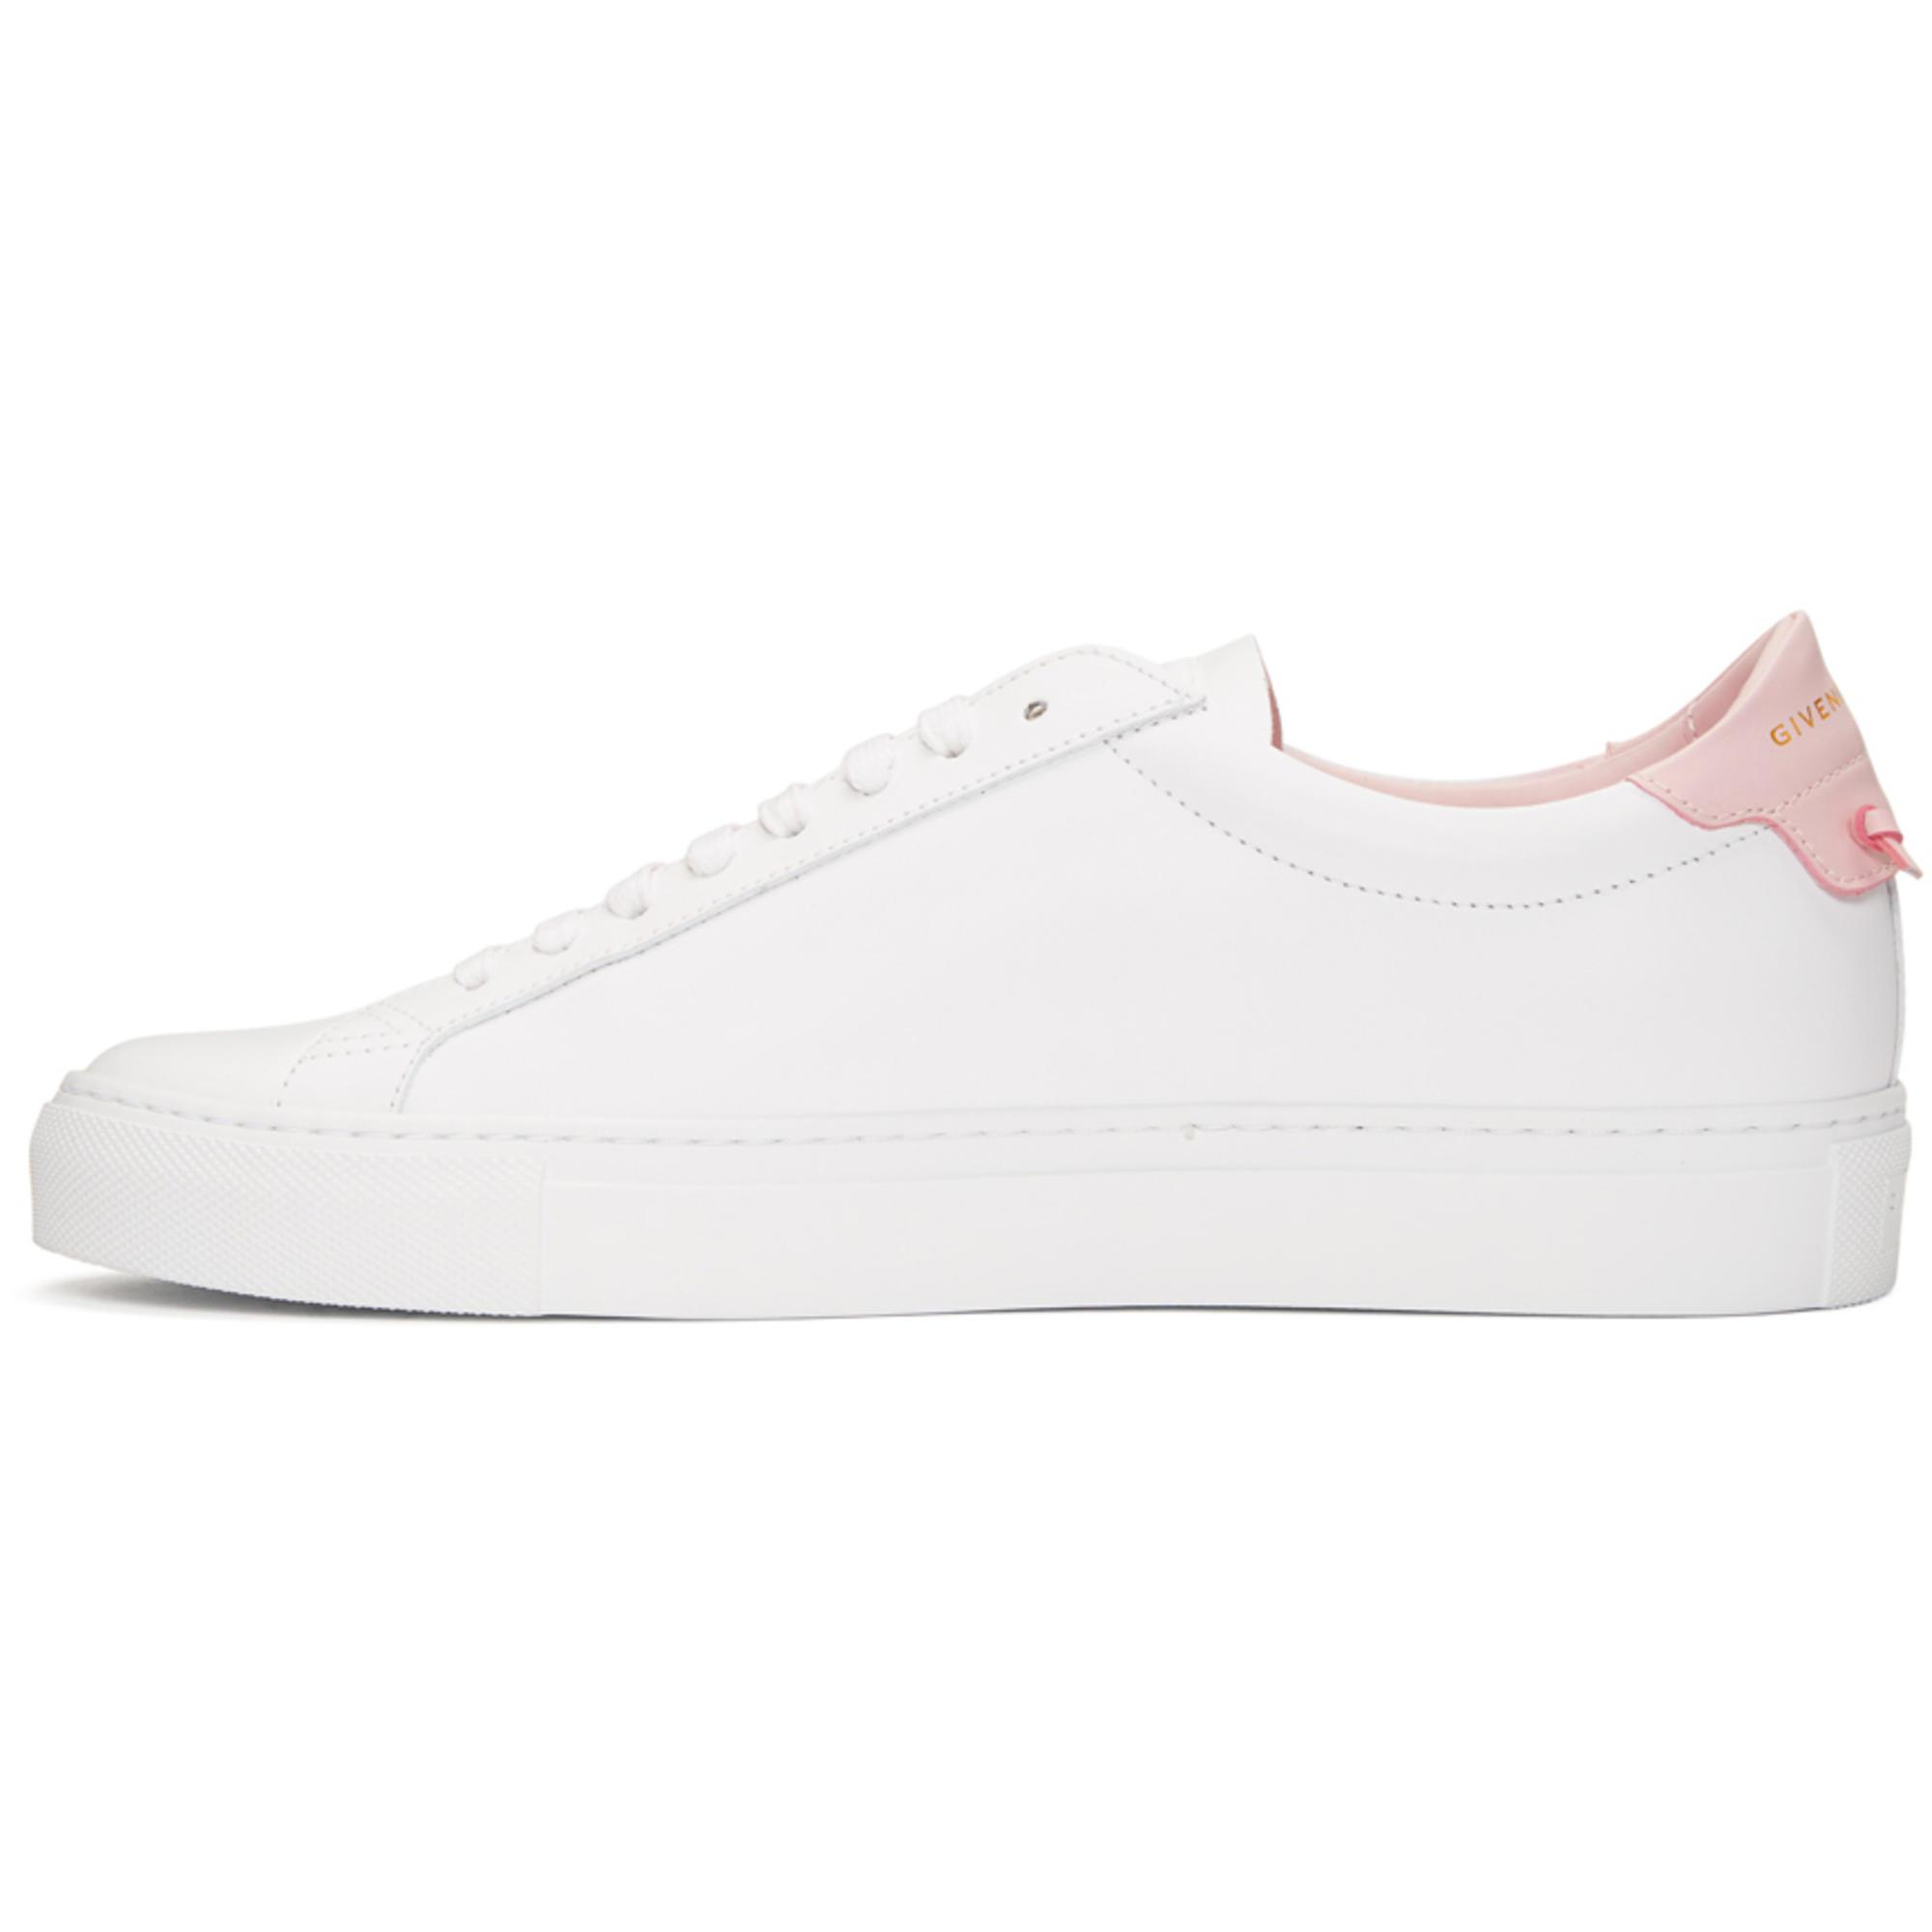 Givenchy Leather White And Pink Urban